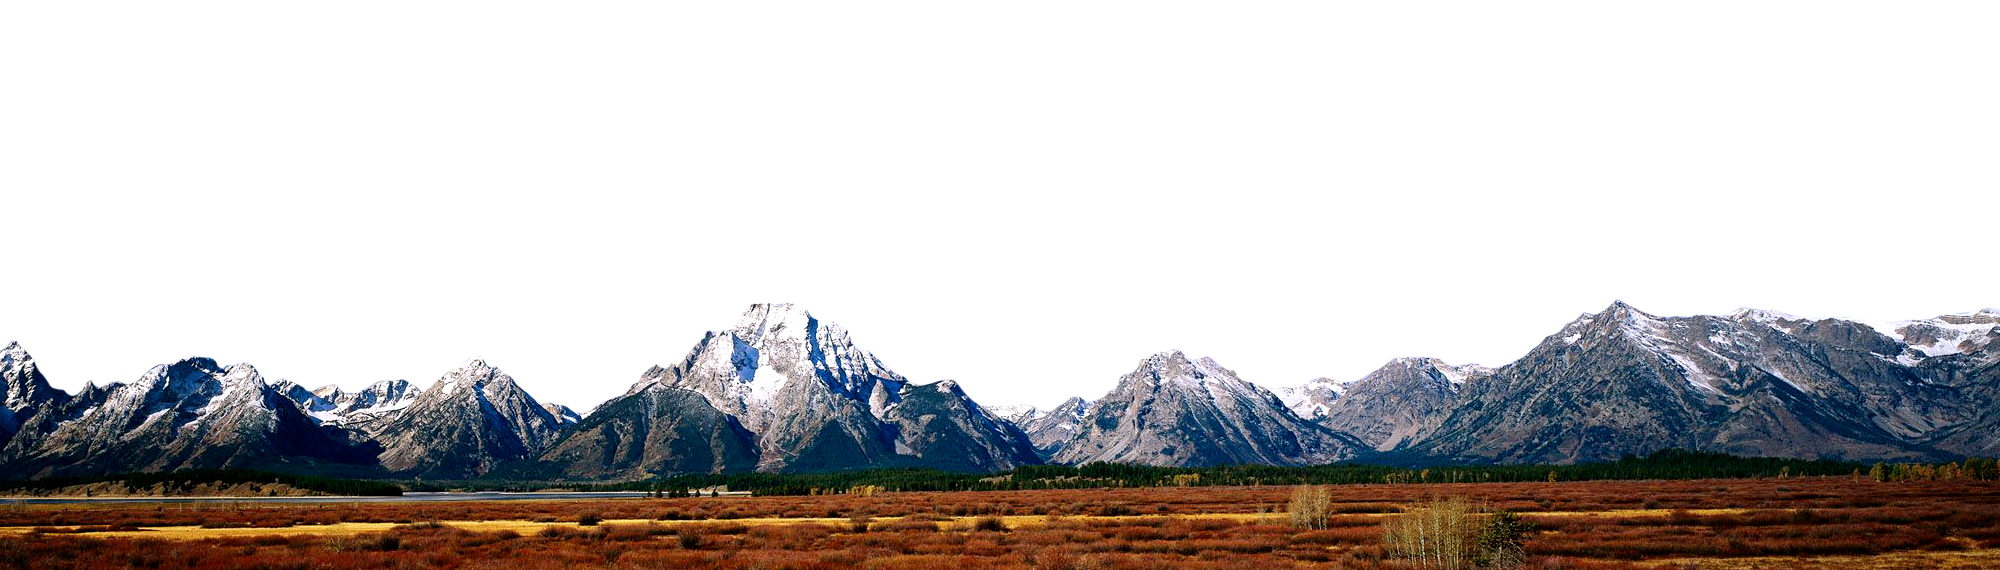 Mountains PNG HD - 120448